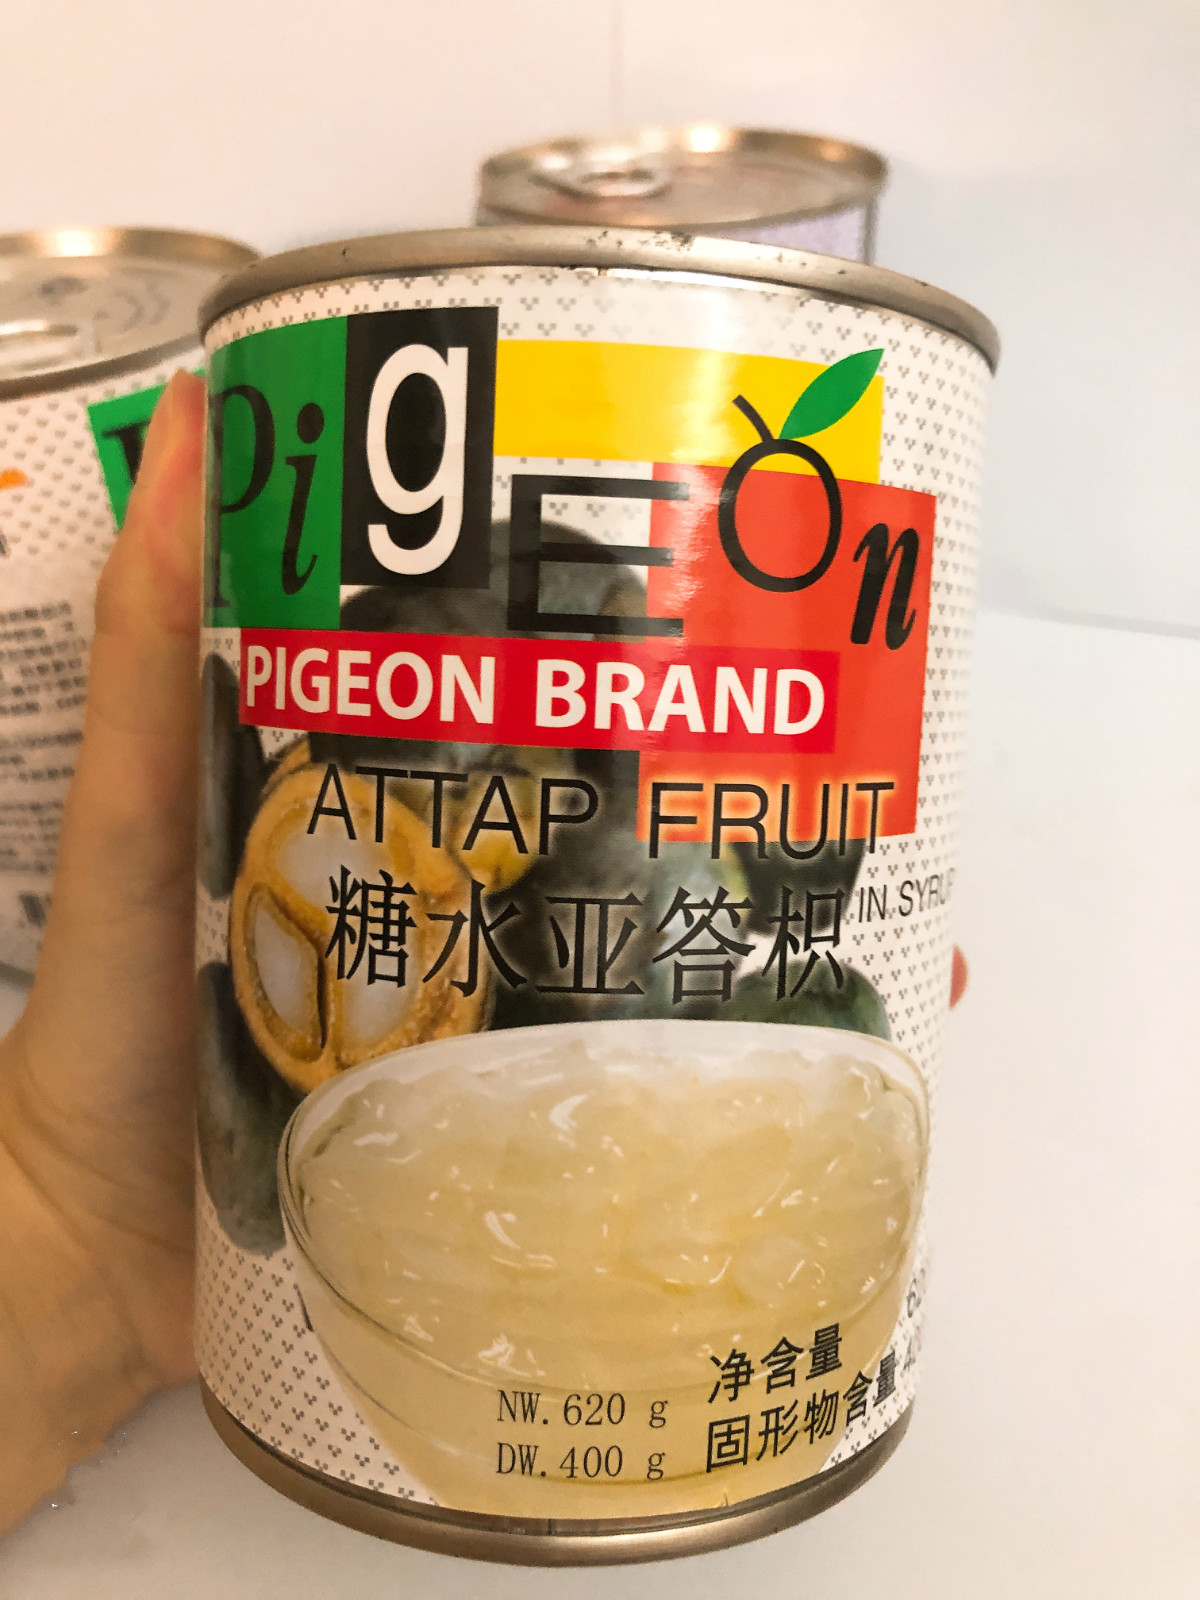 White Pigeon Brand Thailand original imported Asian product can